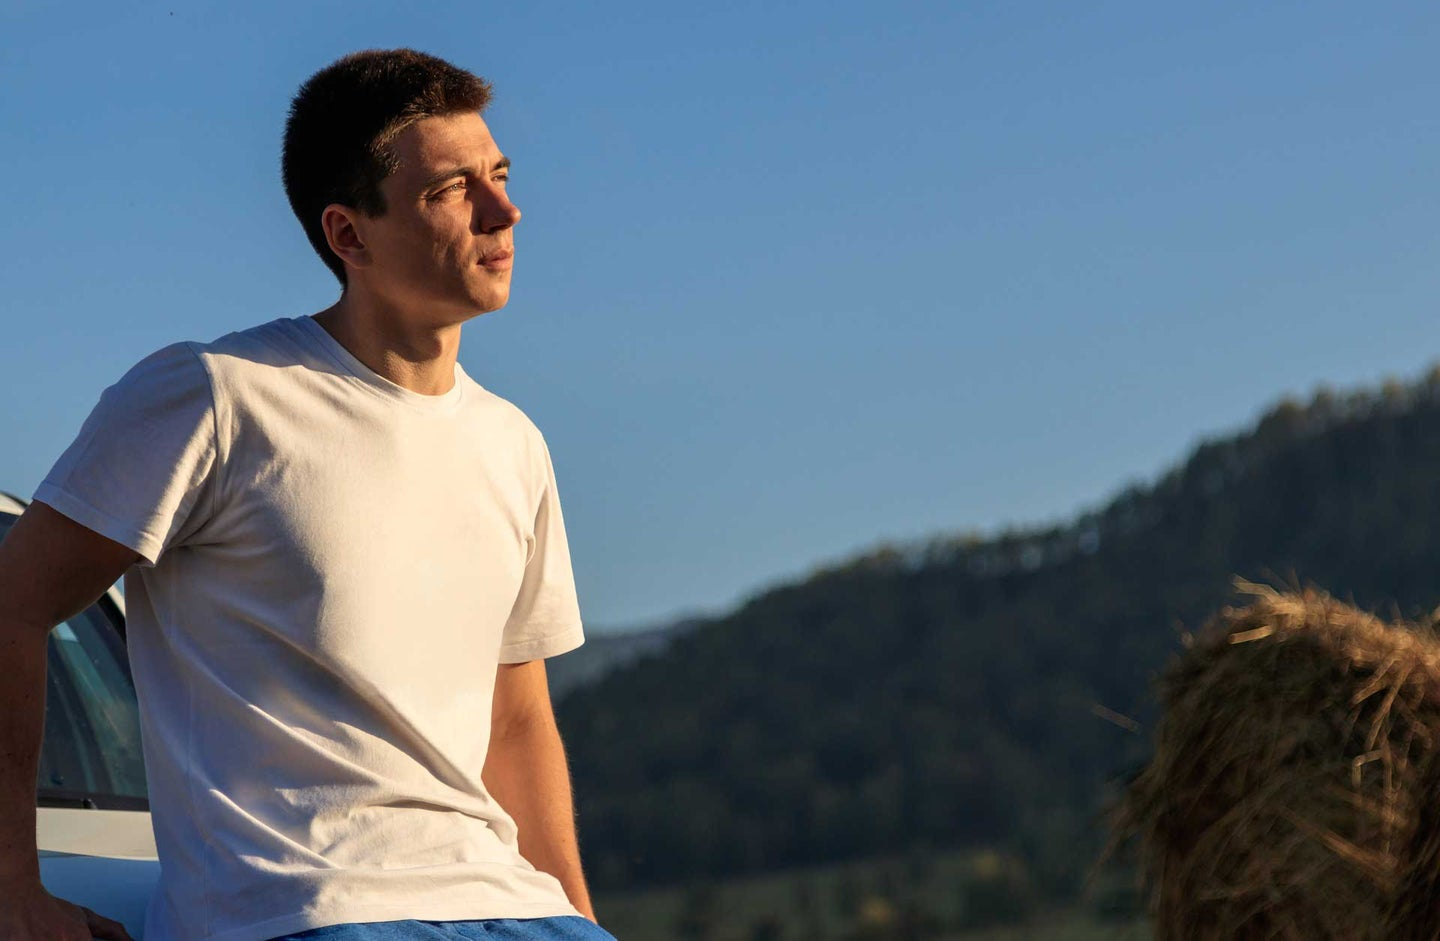 Guy in a white tee shirt gazing out